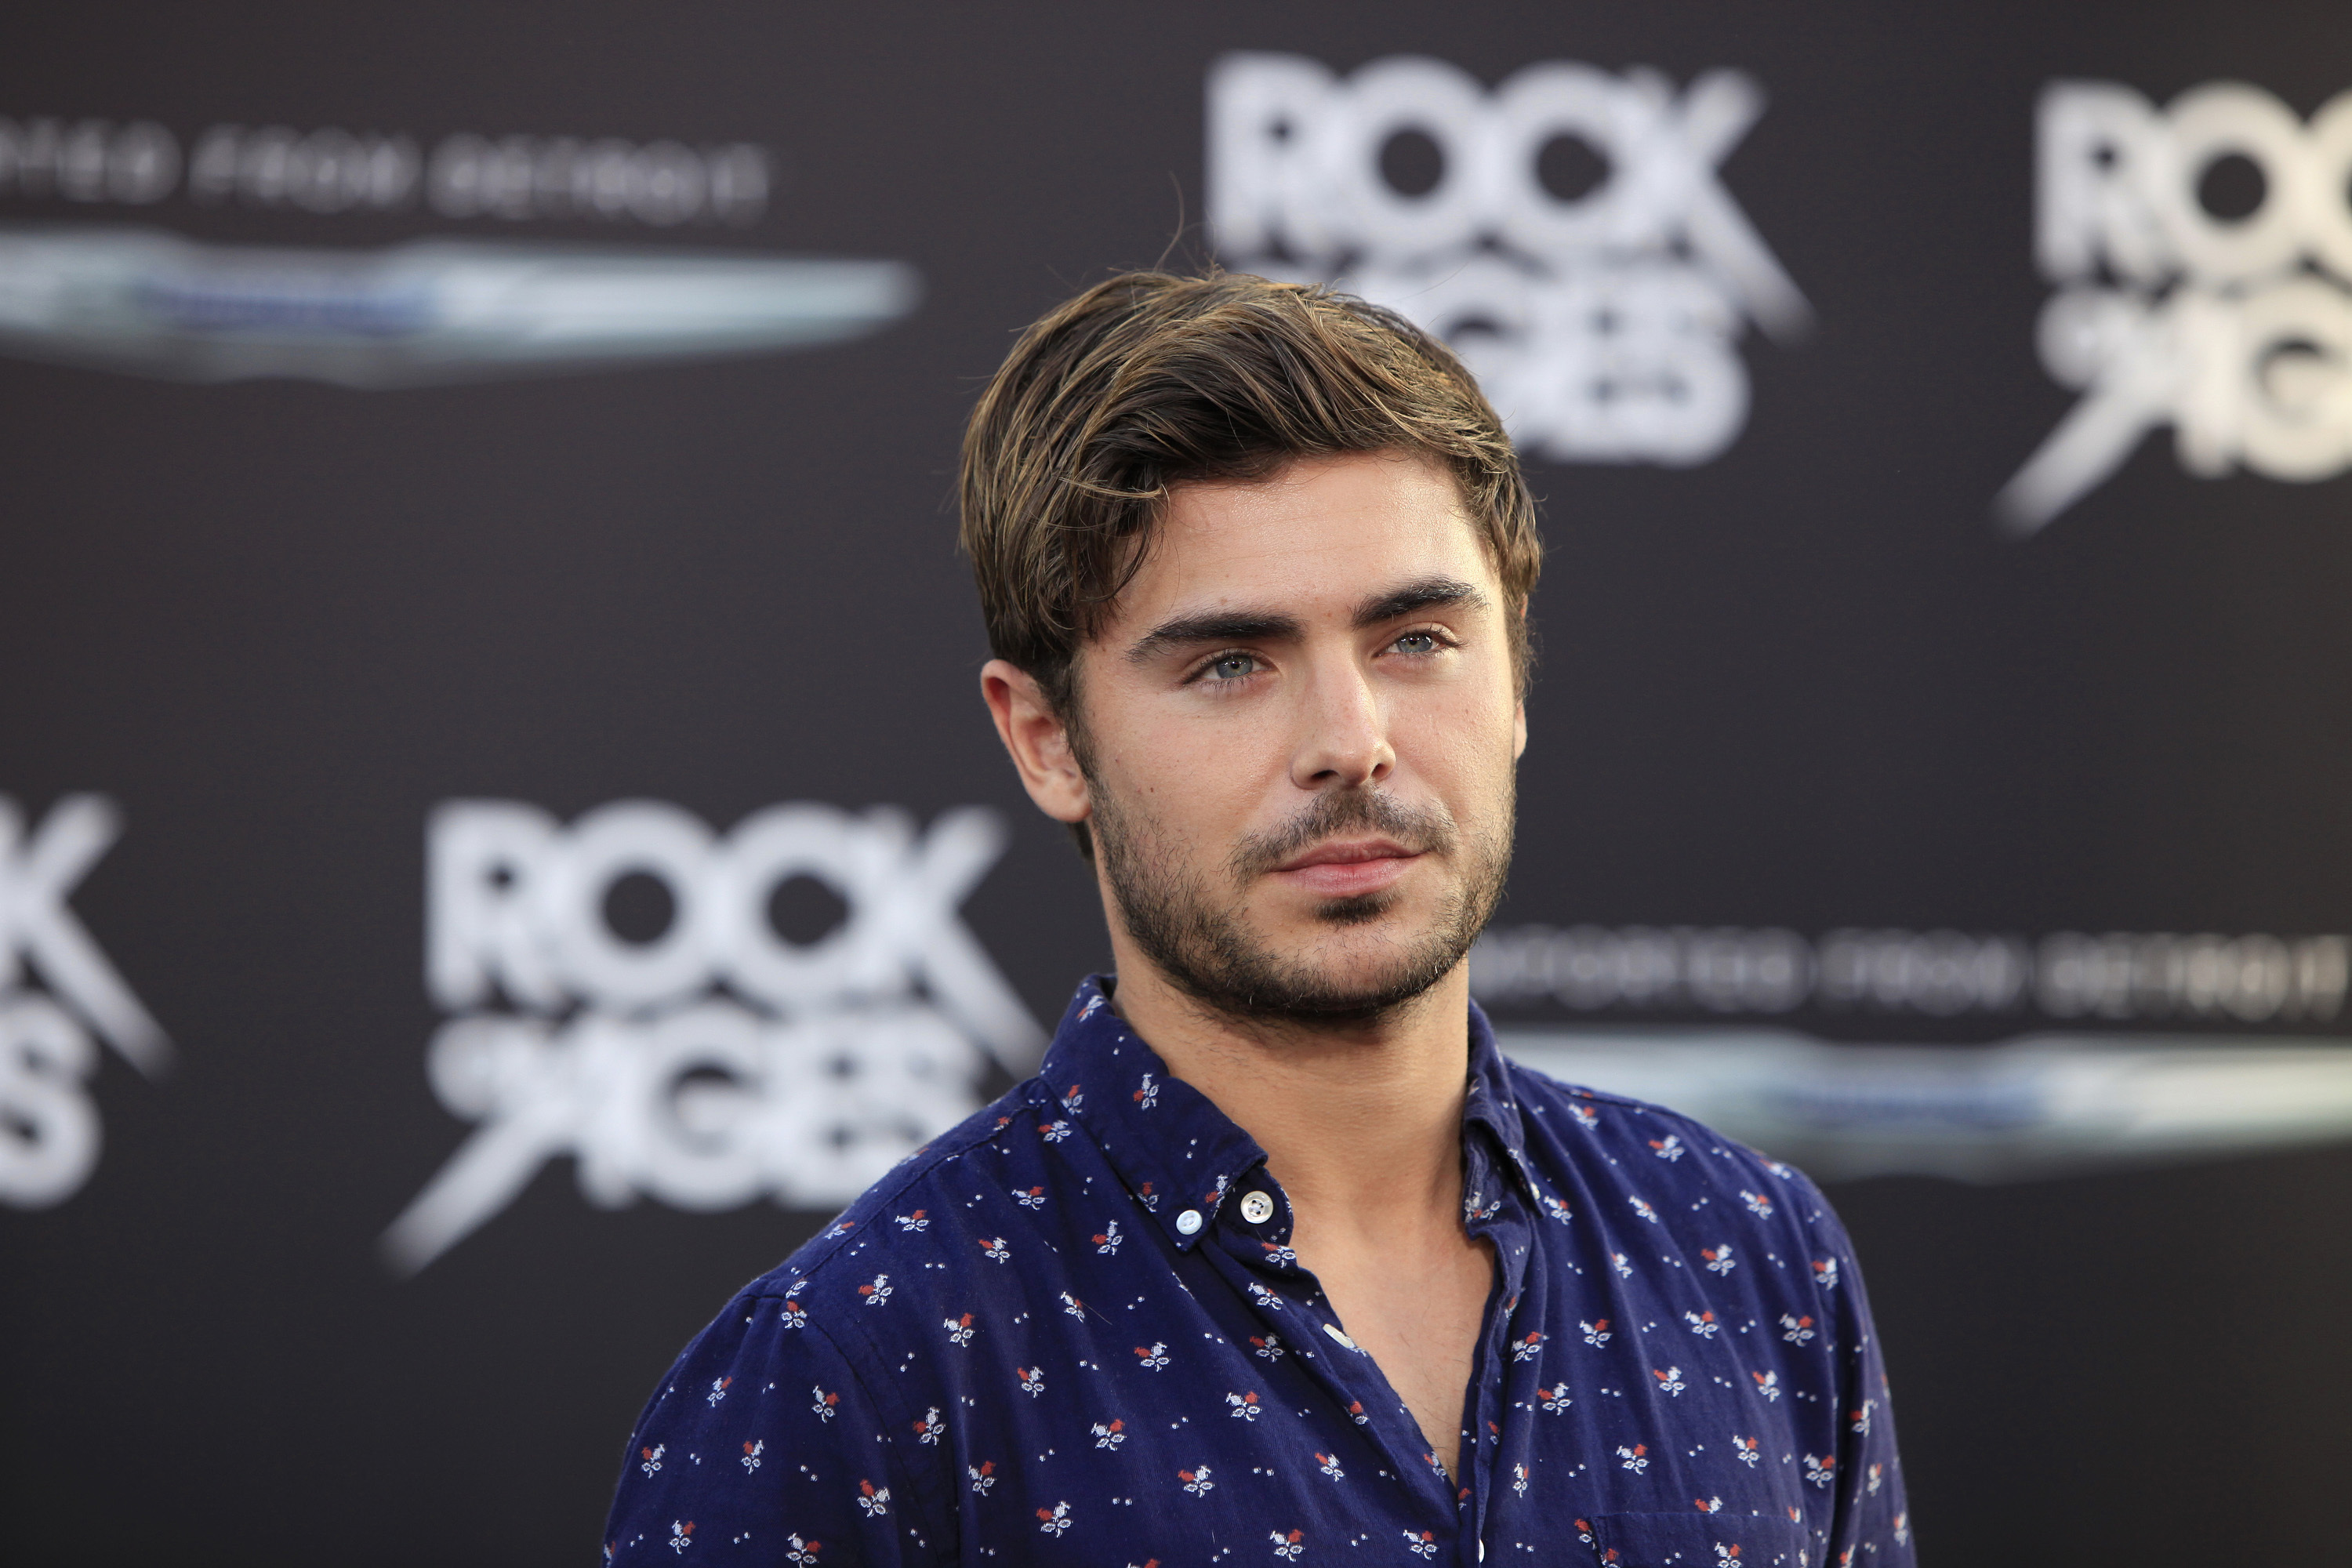 Zac Efron Says Girls Don't Like Him On Tinder, Also Zac Efron Is On Tinder